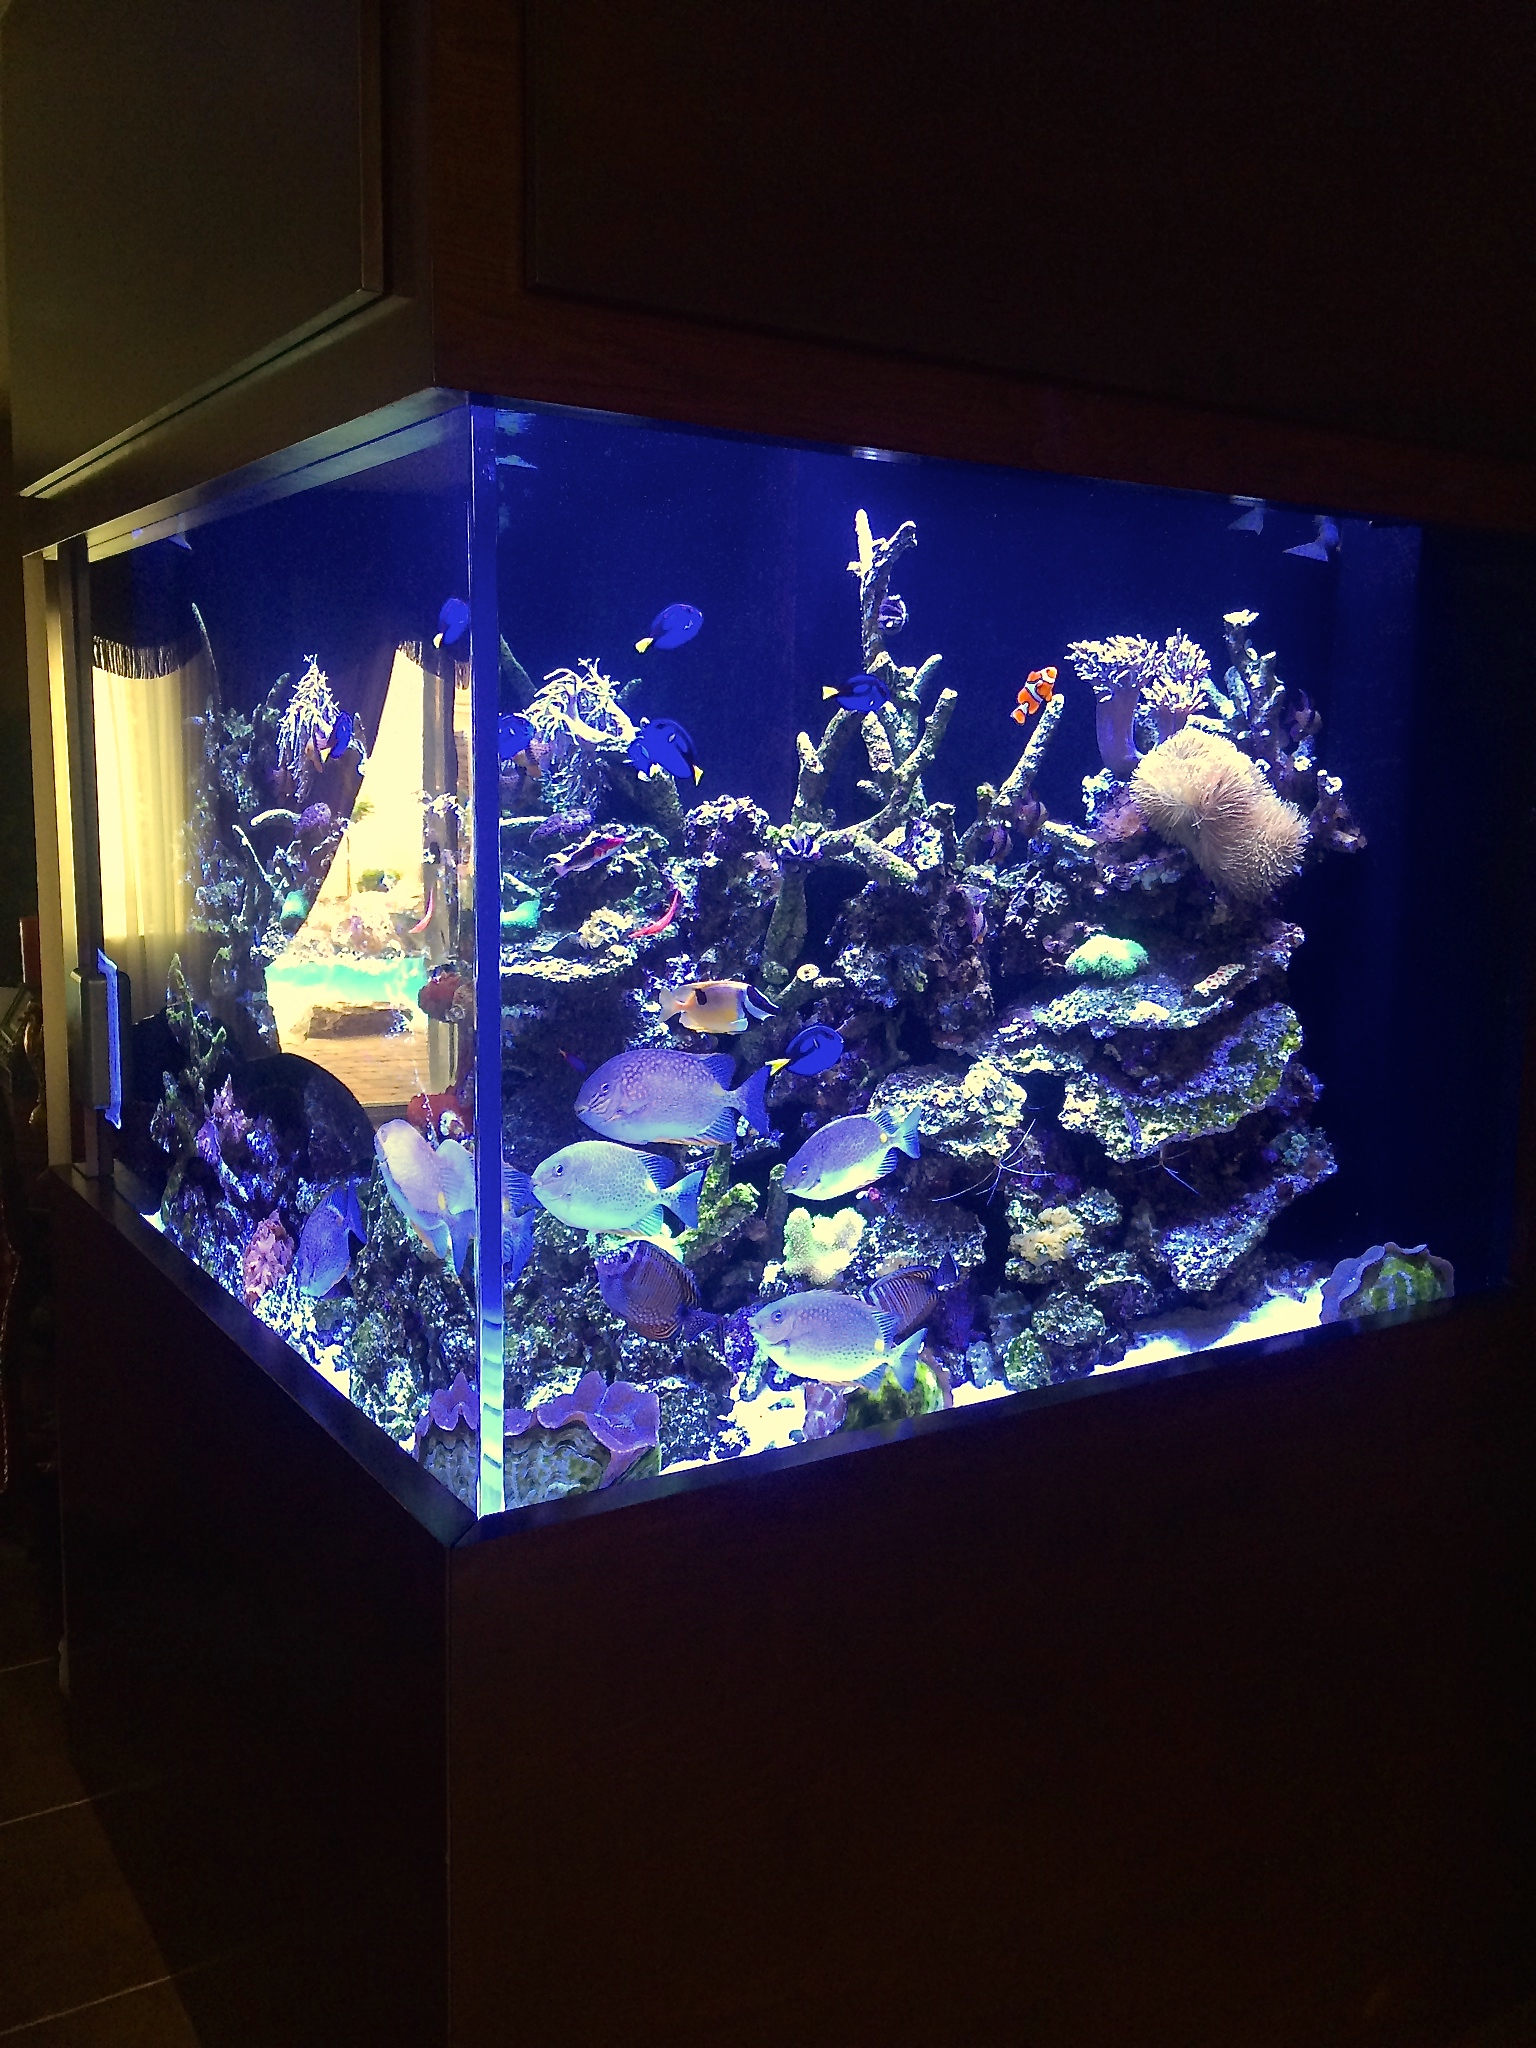 400 gallon living reef aquarium maintenance las vegas for 800 gallon fish tank